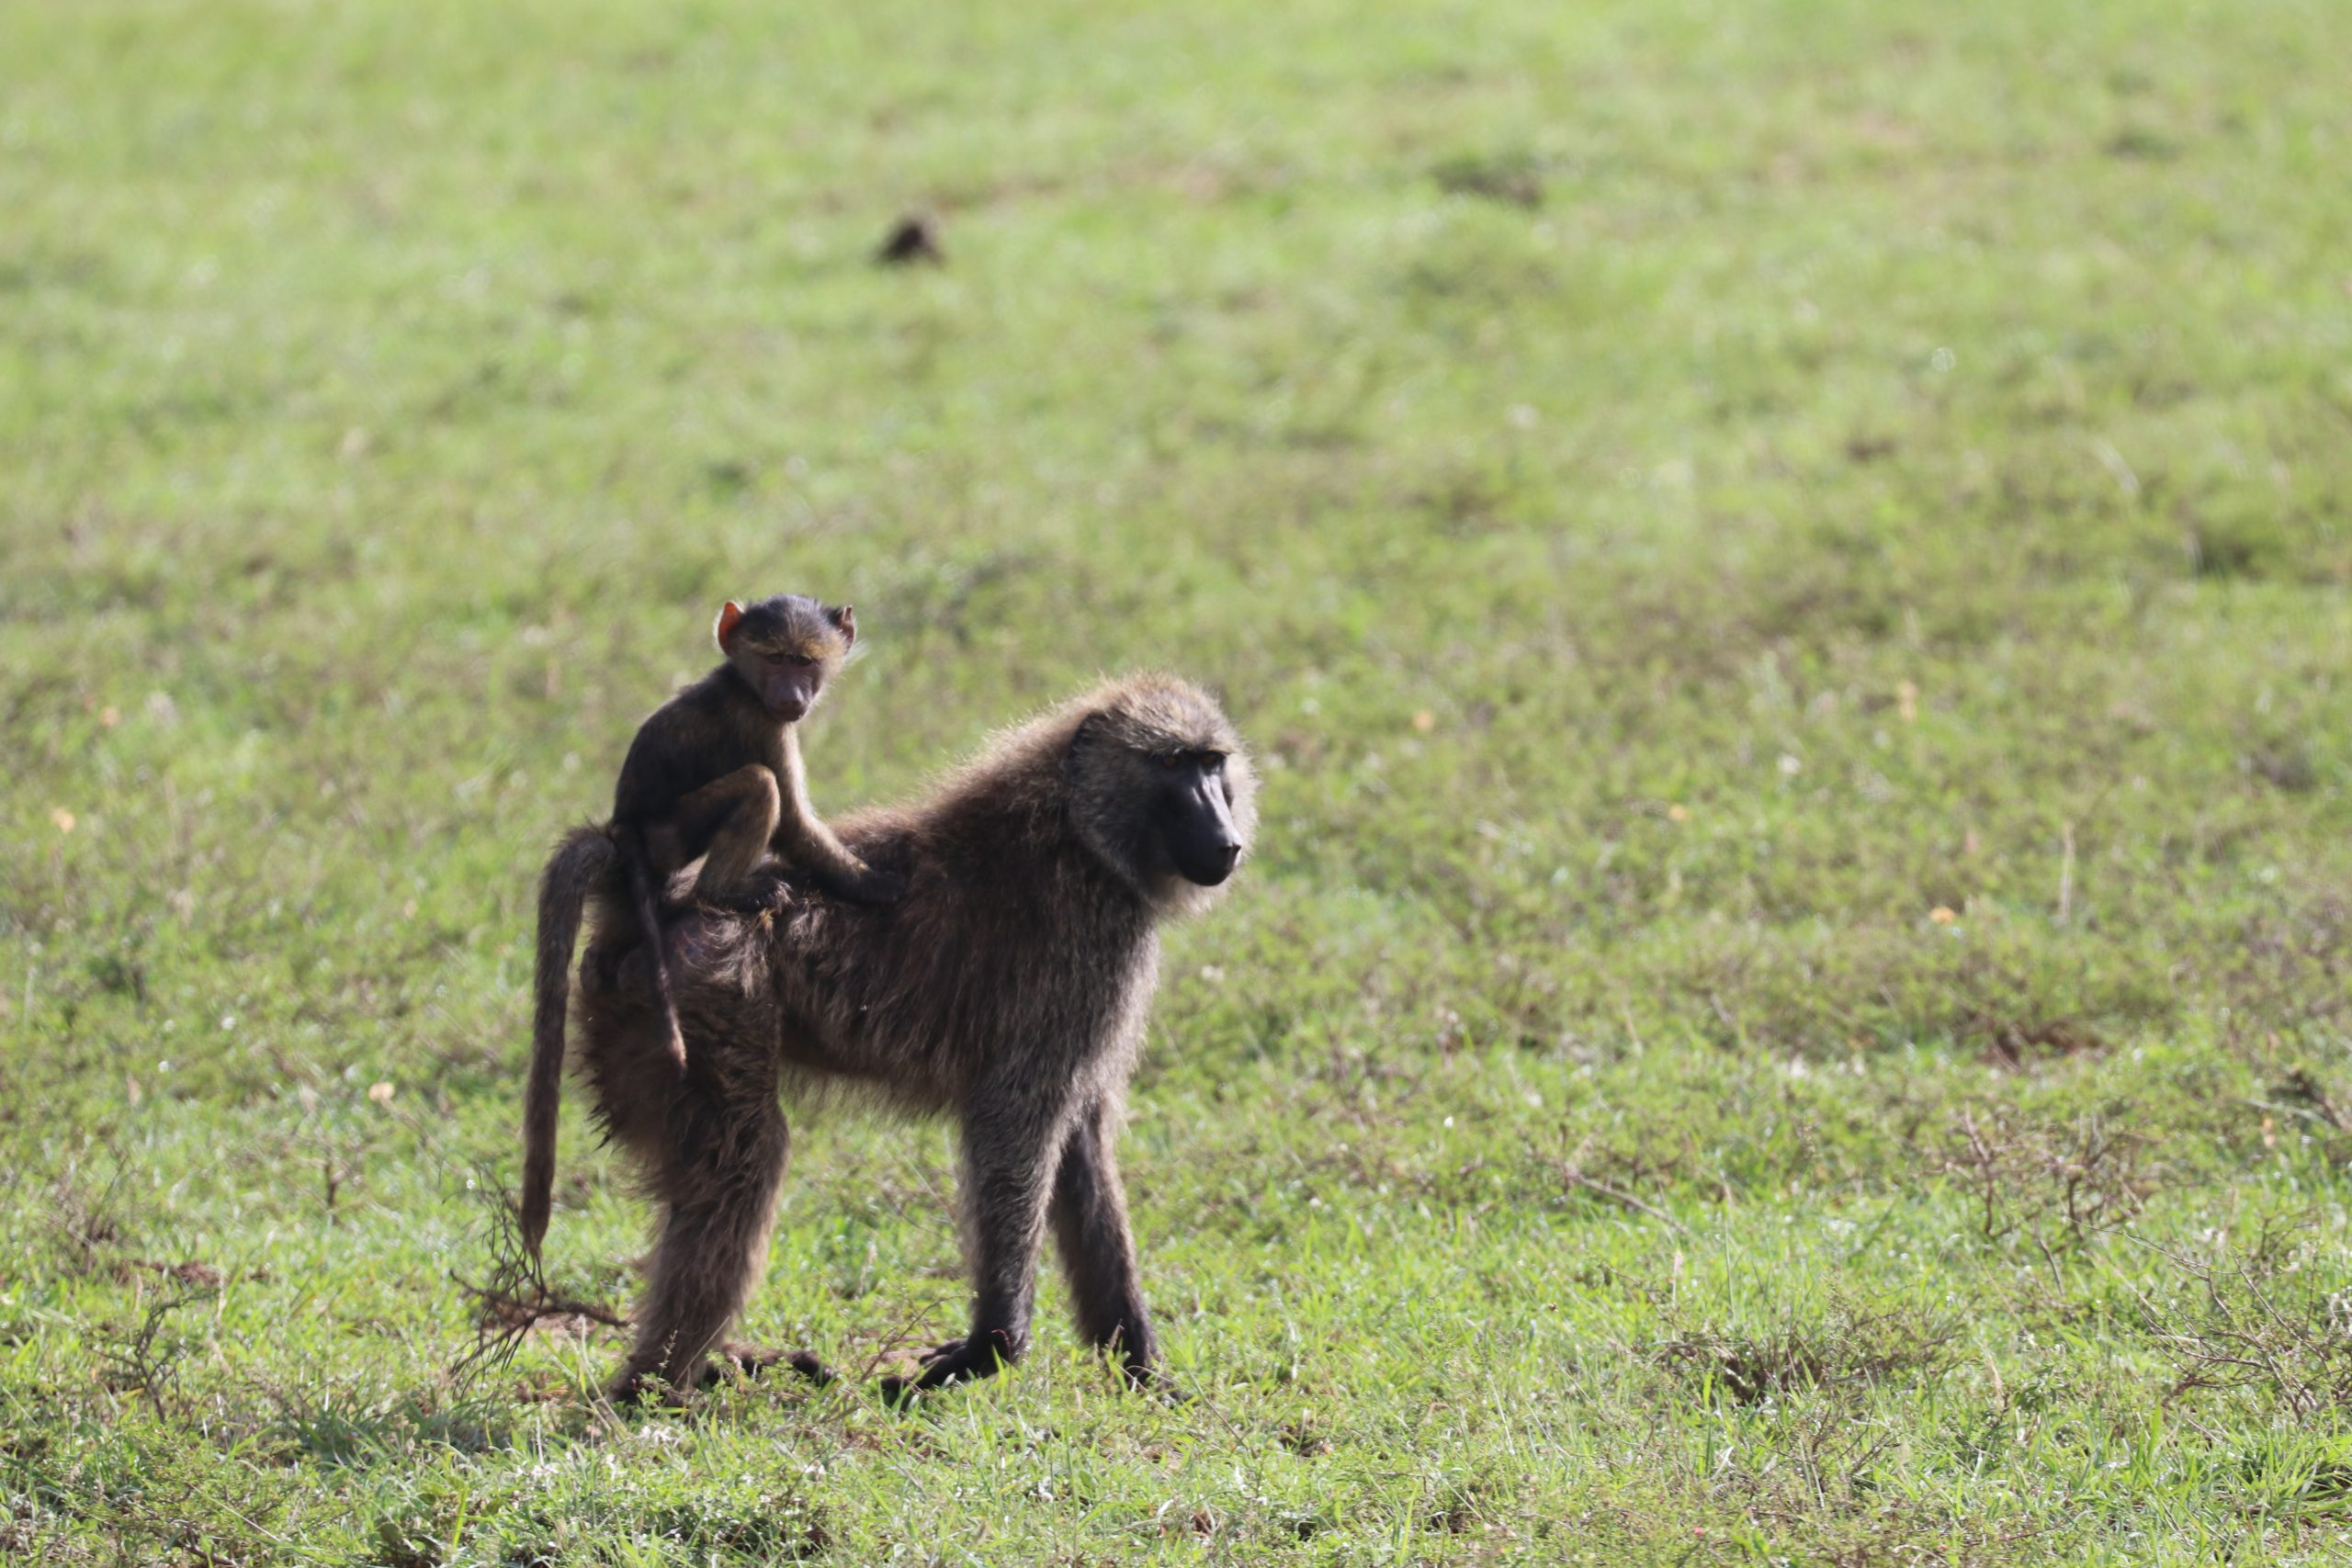 baboon carrying its young on its back